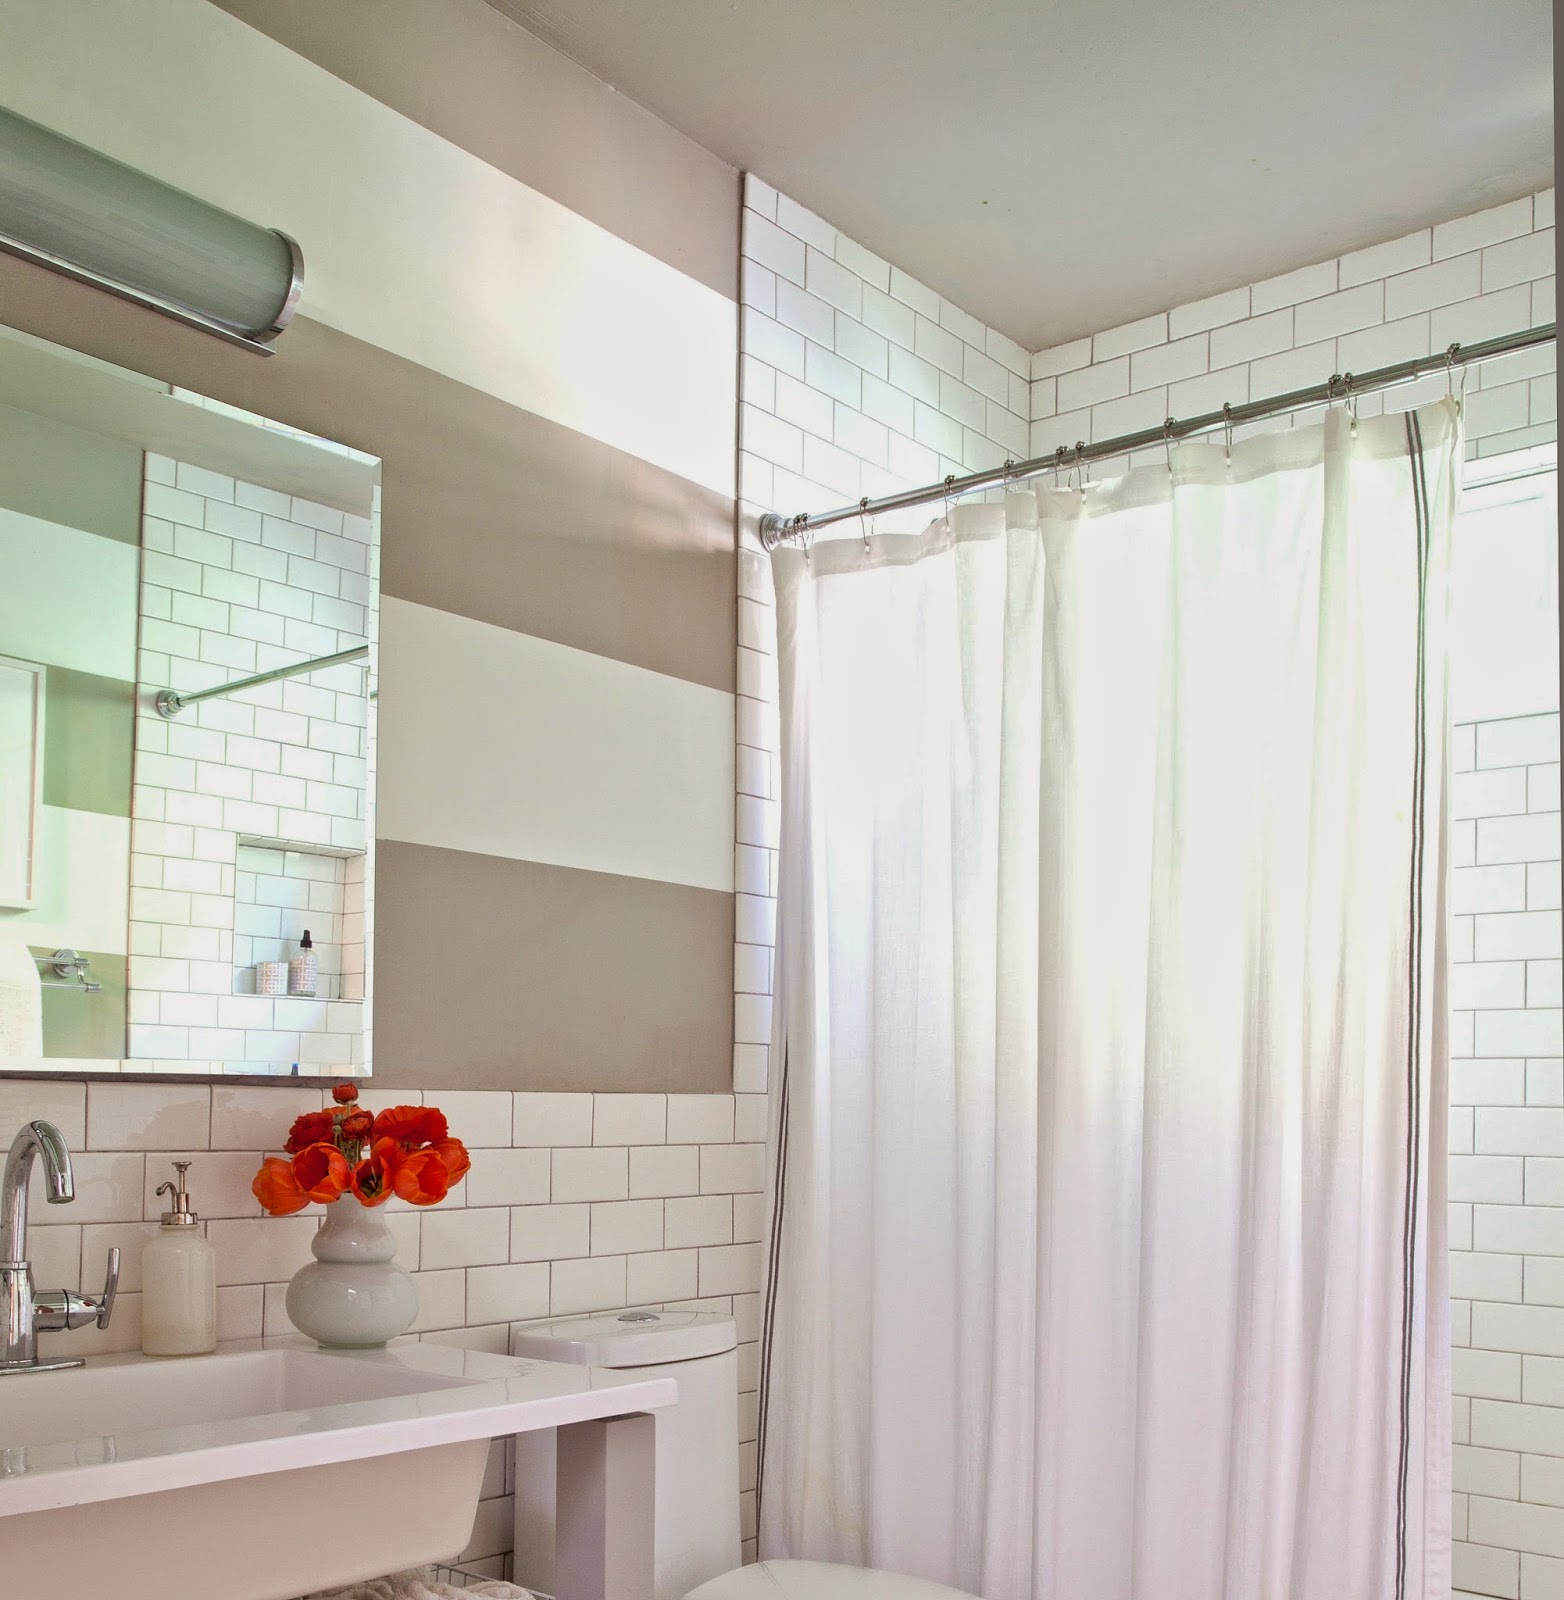 Rosa Beltran Design: MY HOME TOUR PART 5: THE BATHROOM (AND PAINTED ...